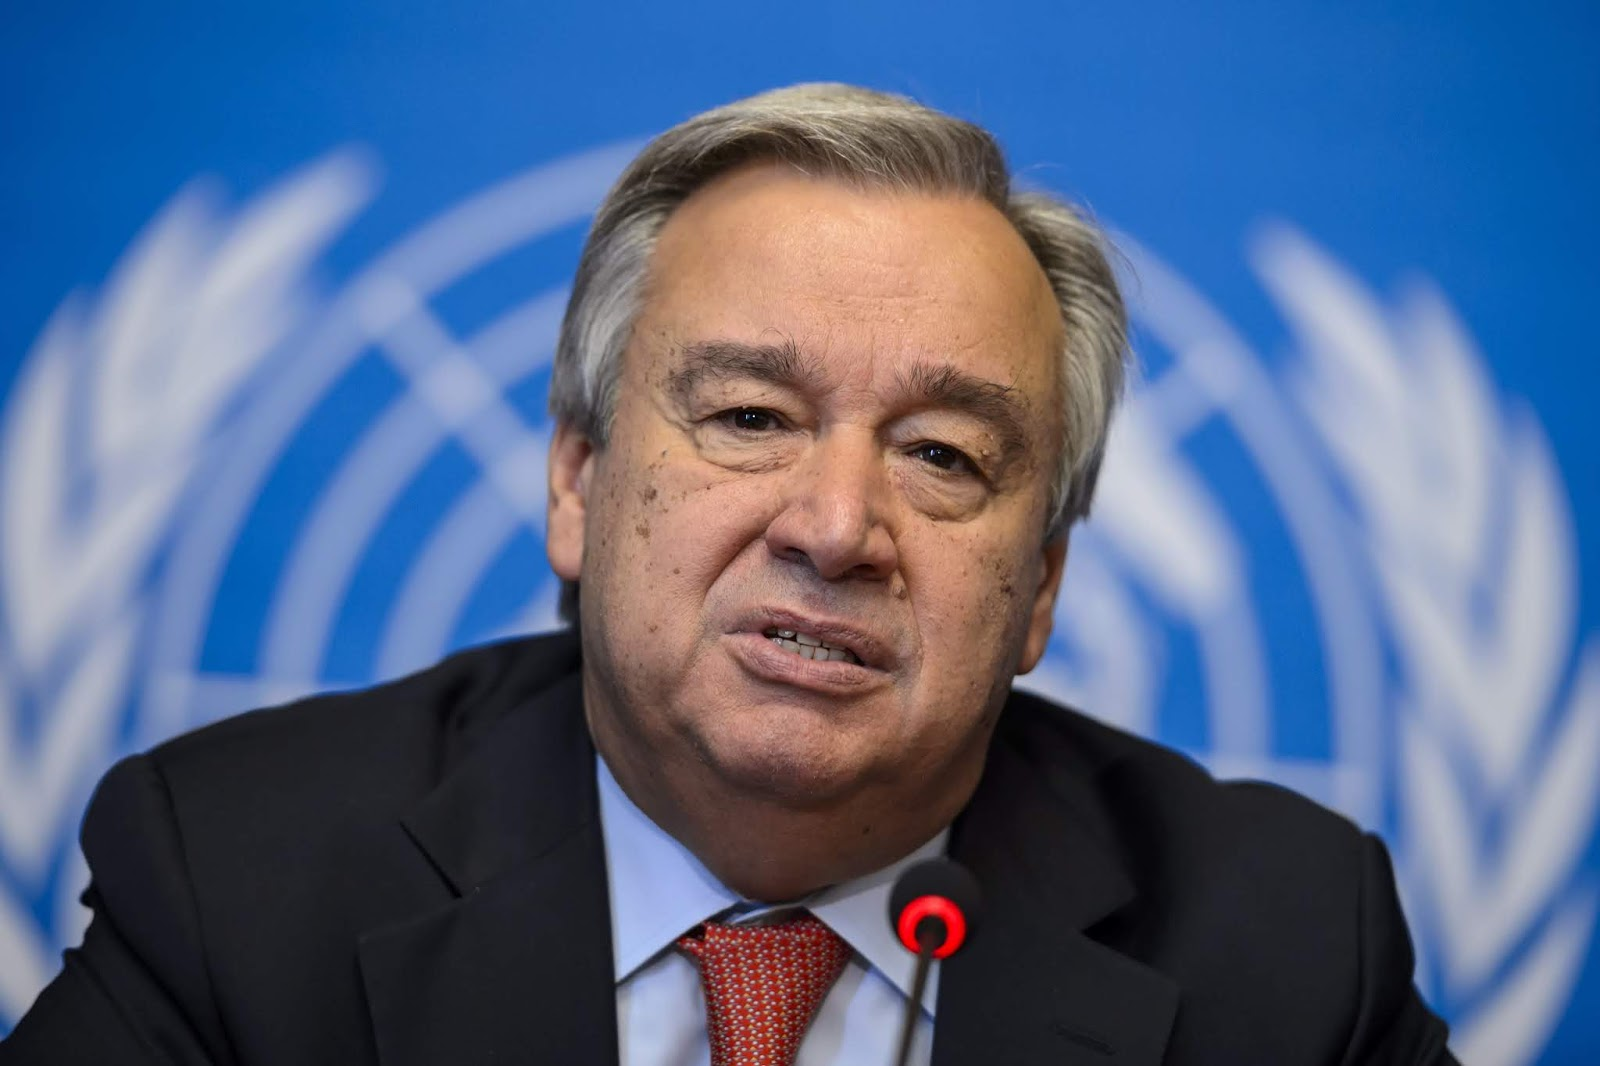 Covid-19 Could Kill Millions in Africa without Immediate Action says UN Chief General Antonio Guterres